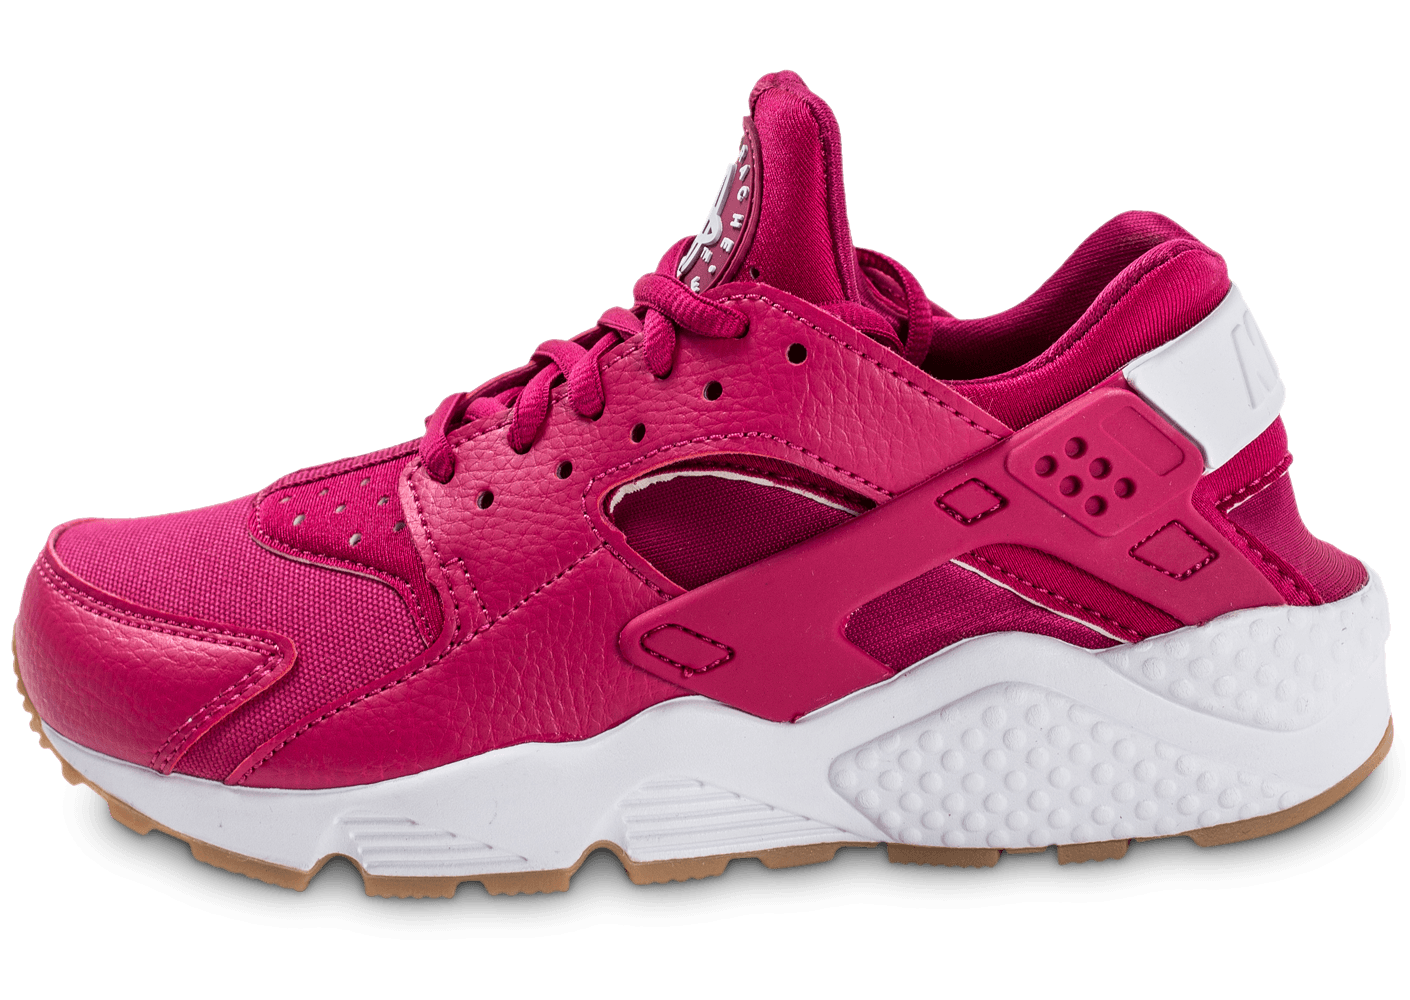 nike air huarache run rose fuschia chaussures femme chausport. Black Bedroom Furniture Sets. Home Design Ideas